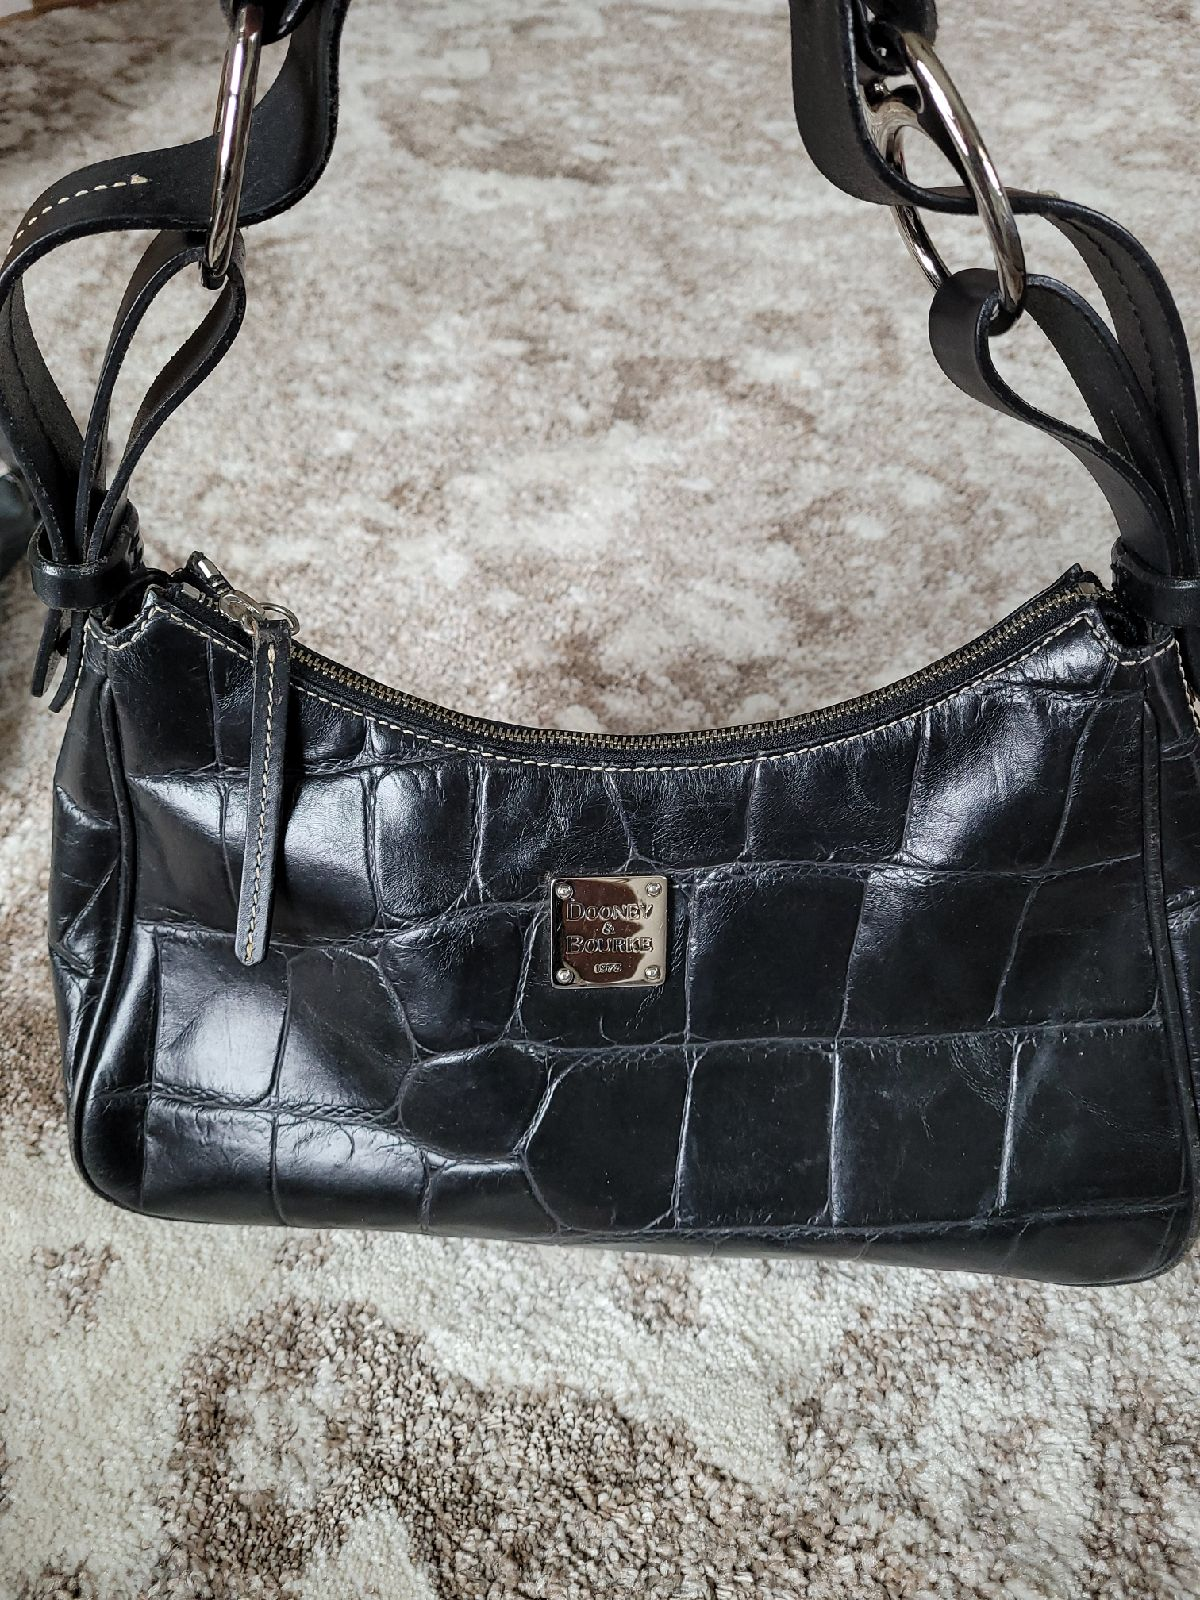 Dooney Bourke black leather